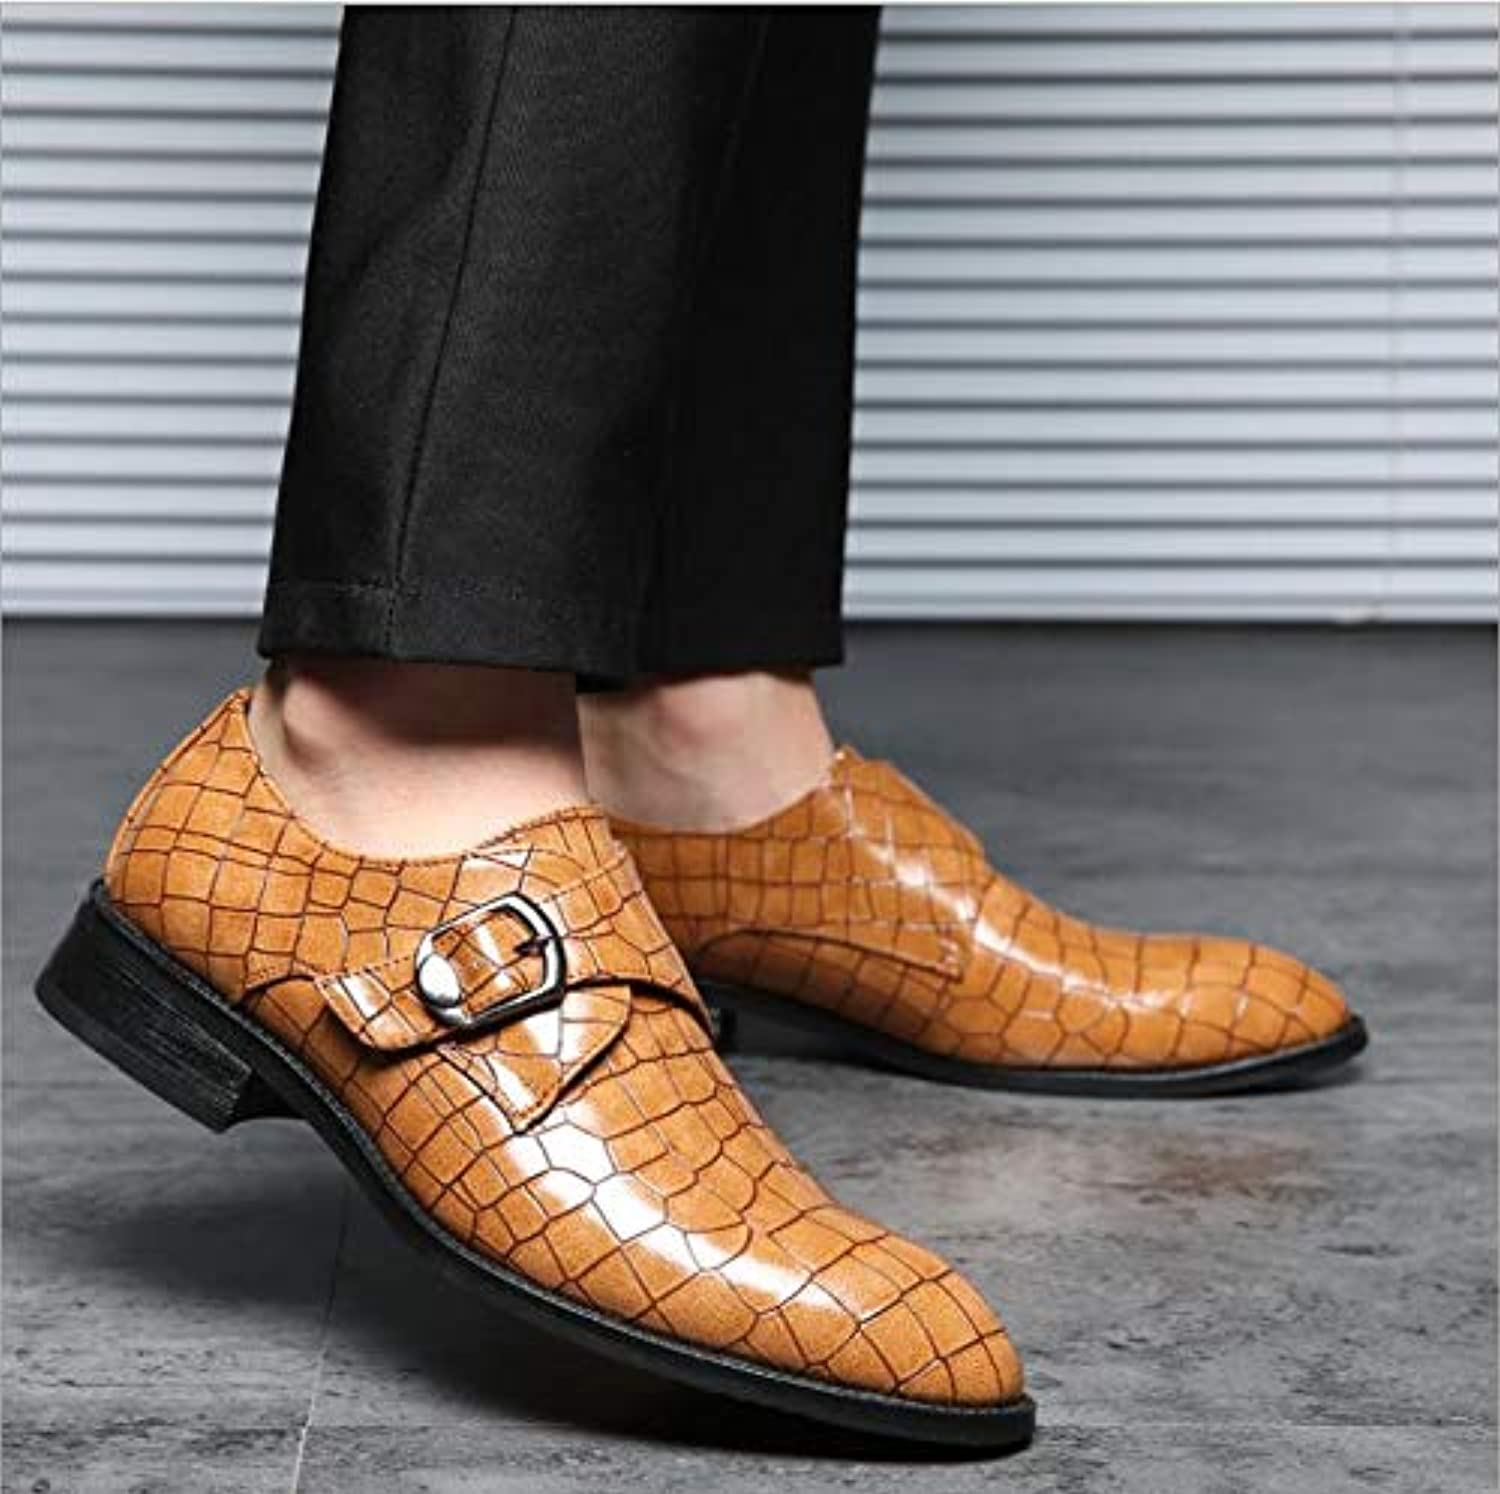 LOVDRAM Men'S Leather shoes New Men Dress shoes Formal Wedding Pu Leather shoes Retro Brogue Business Office Men'S Flats Oxfords For Men 6.5 As Pic